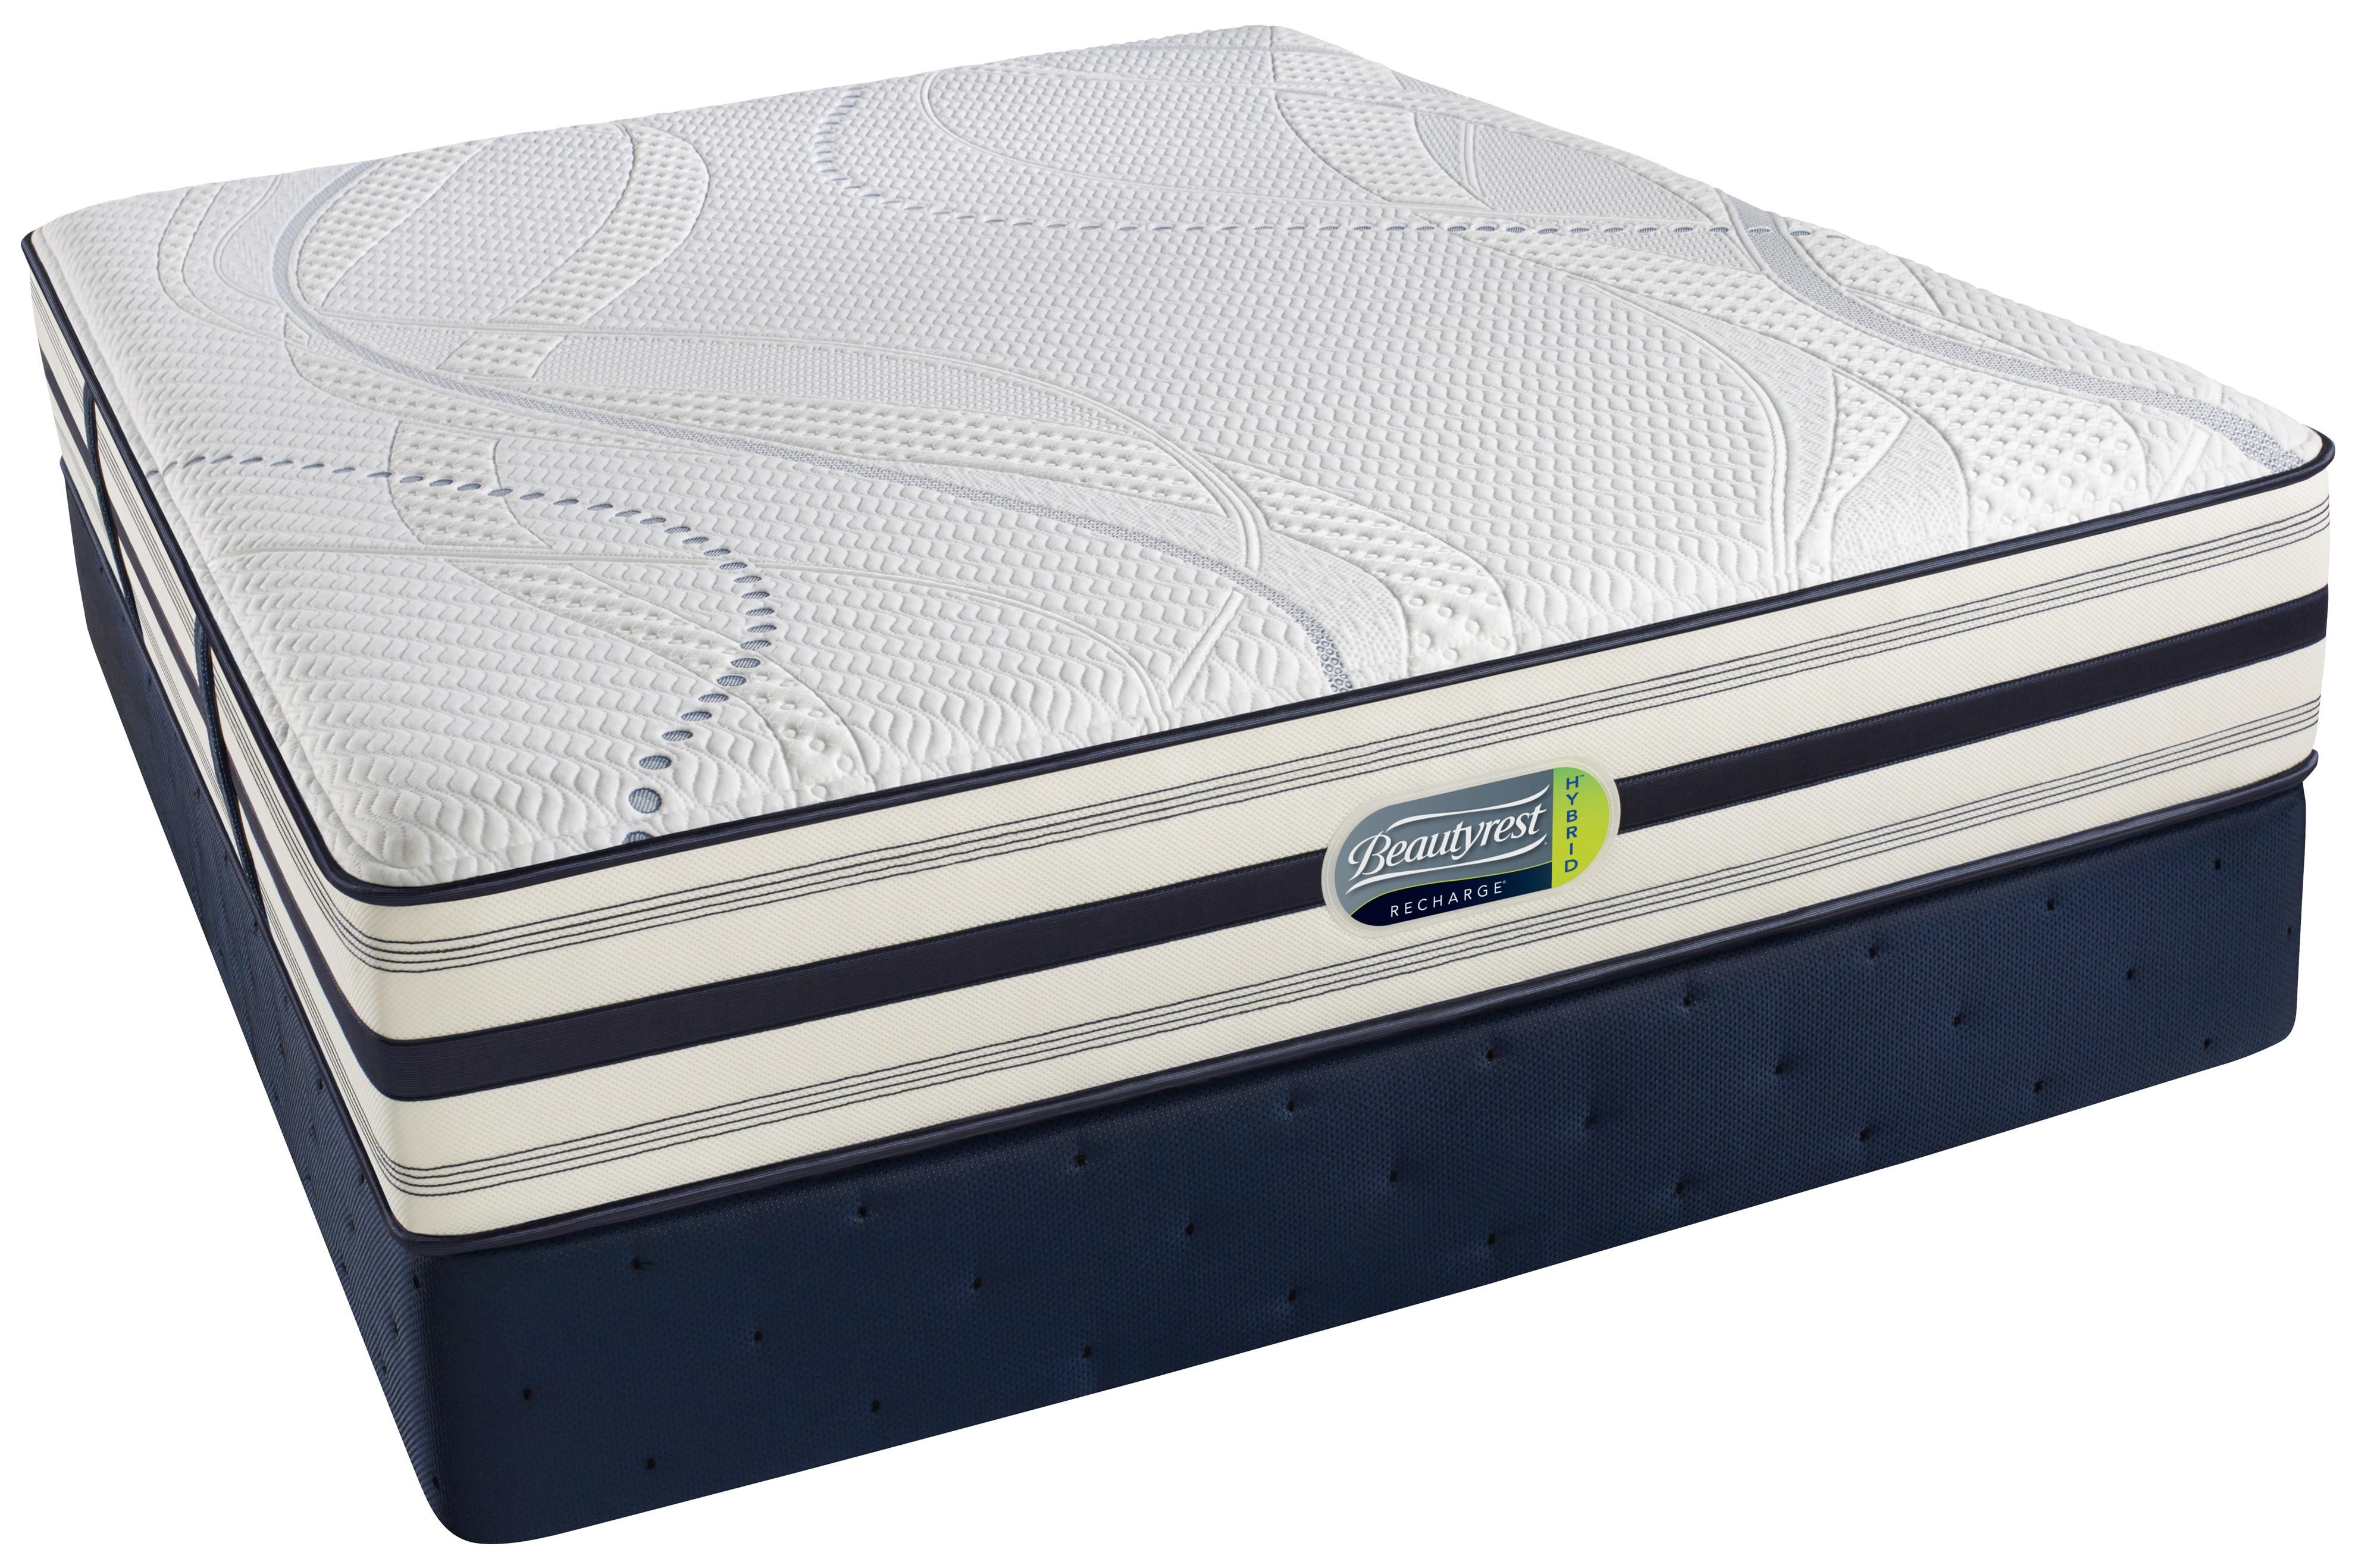 Beautyrest Beautyrest Recharge Hybrid - Altman King Hybrid Luxury Firm Mattress - Item Number: 29579K